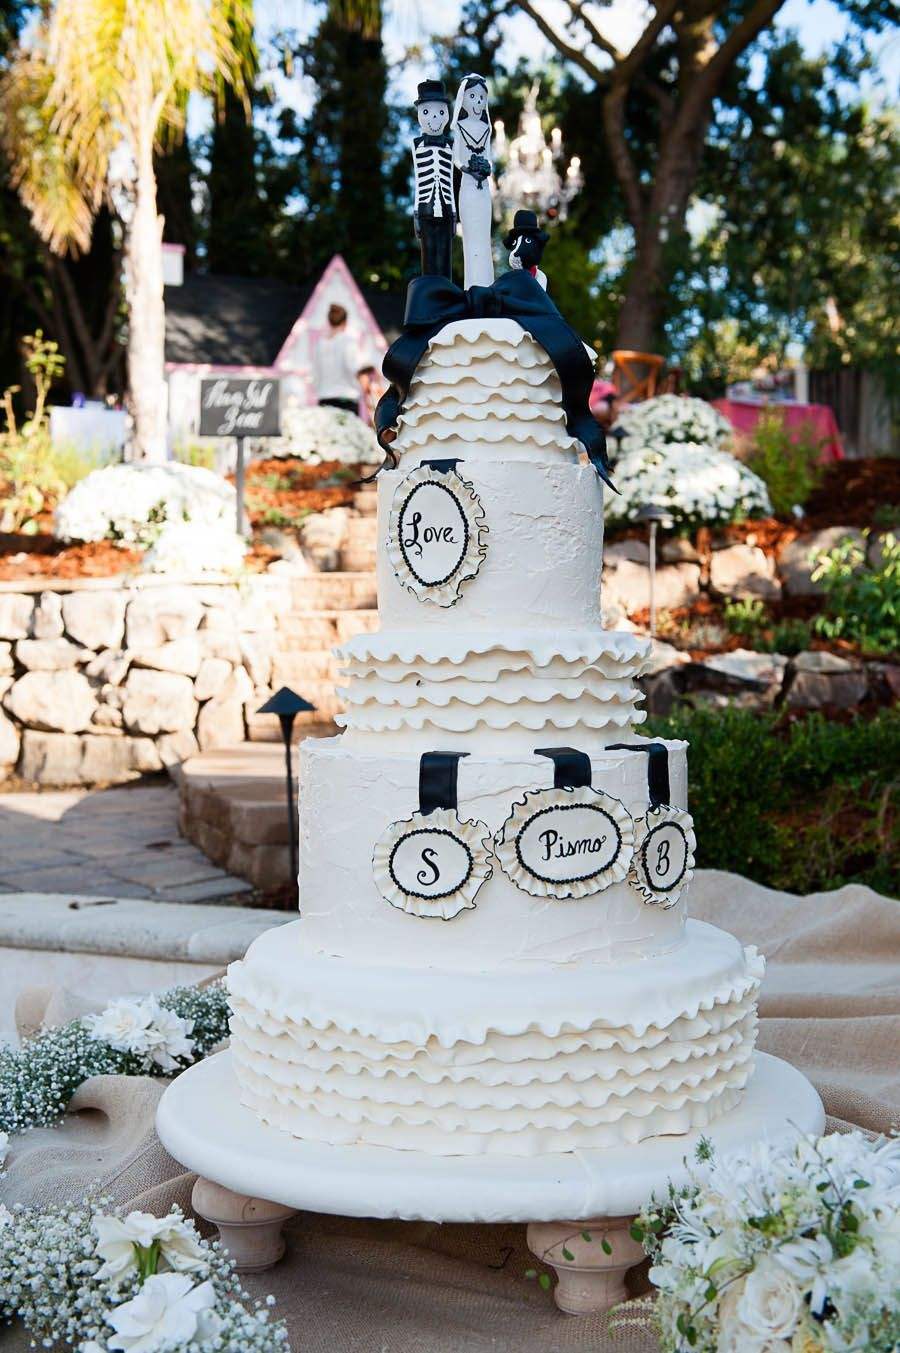 wedding-reception-ideas-26-05152014